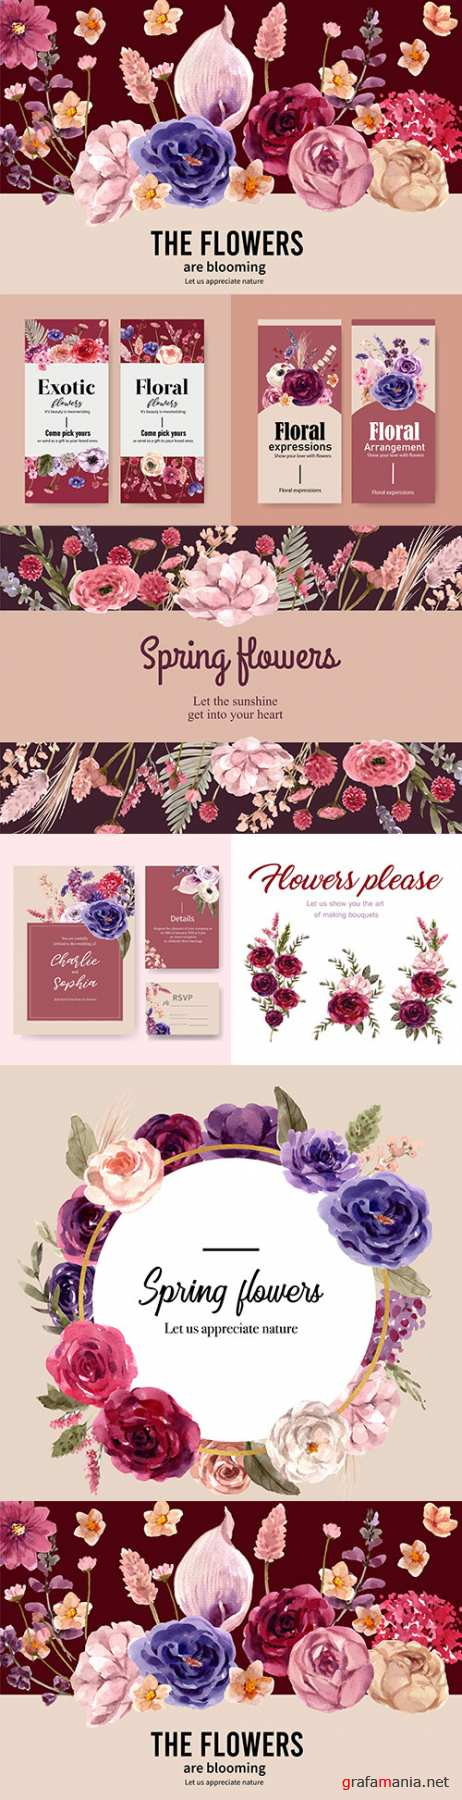 Floral wine wedding postcard watercolor illustration